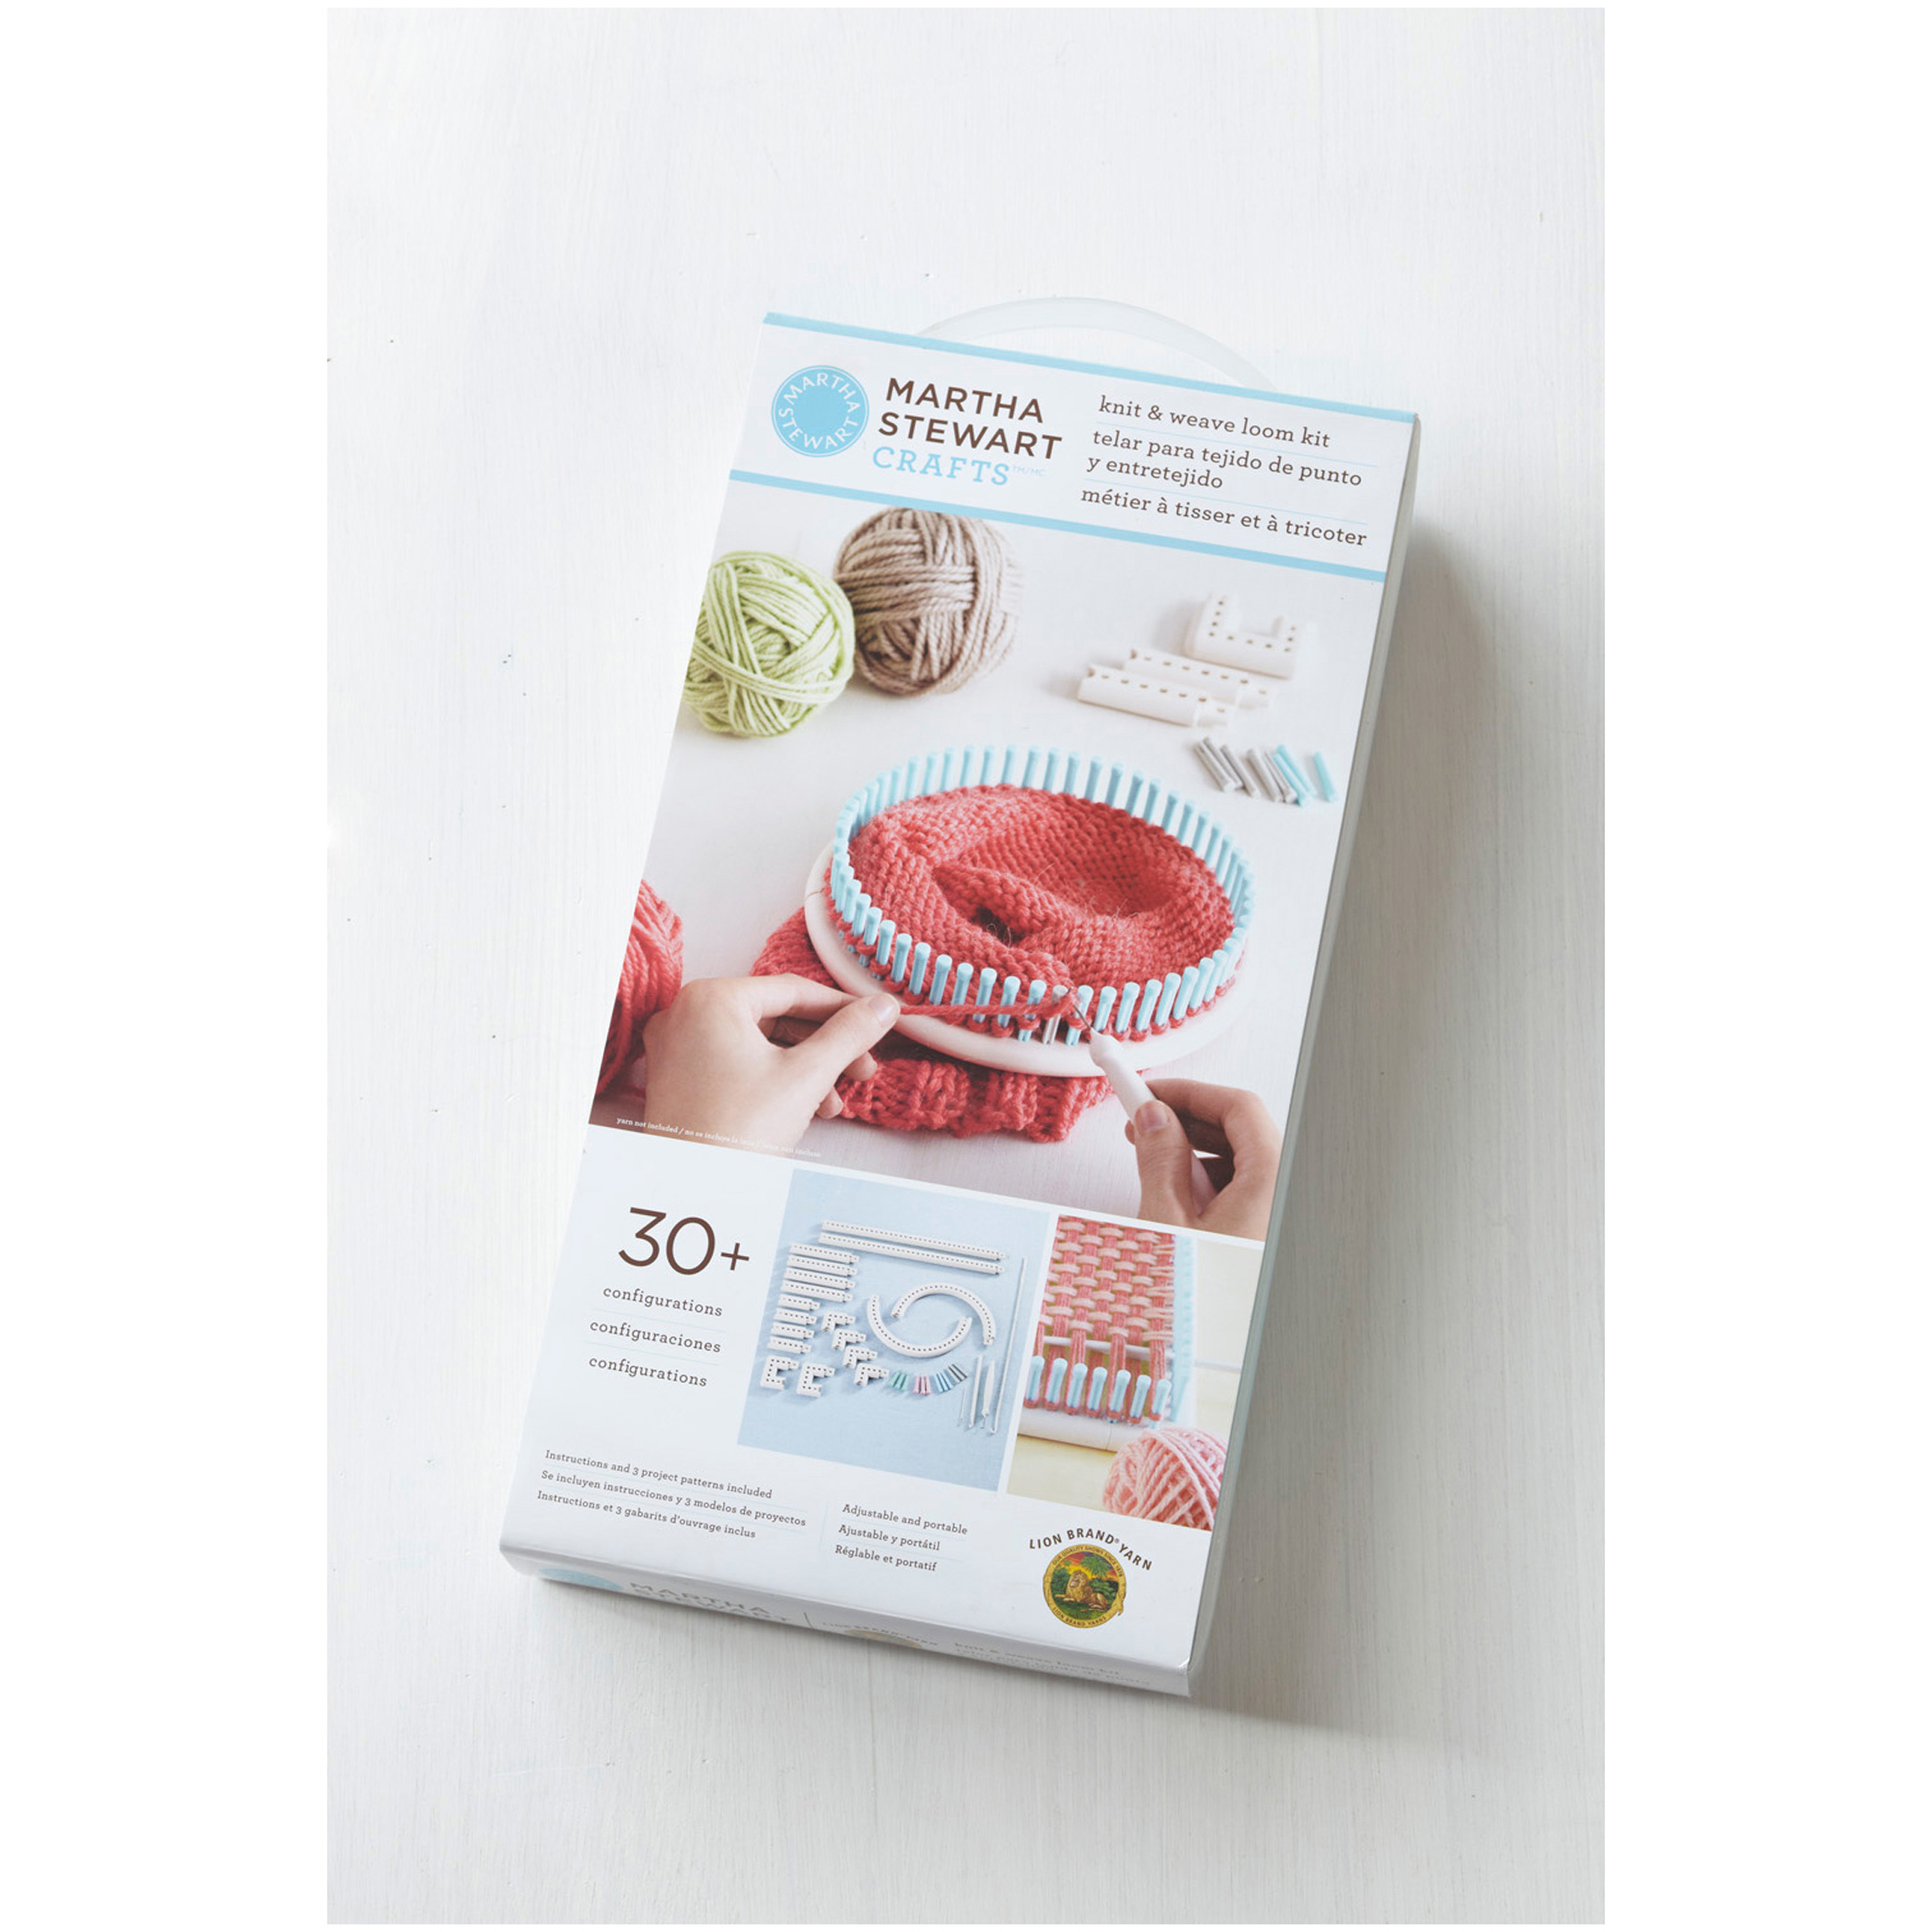 Image of Martha Stewart Crafts Knit & Weave Loom Kit